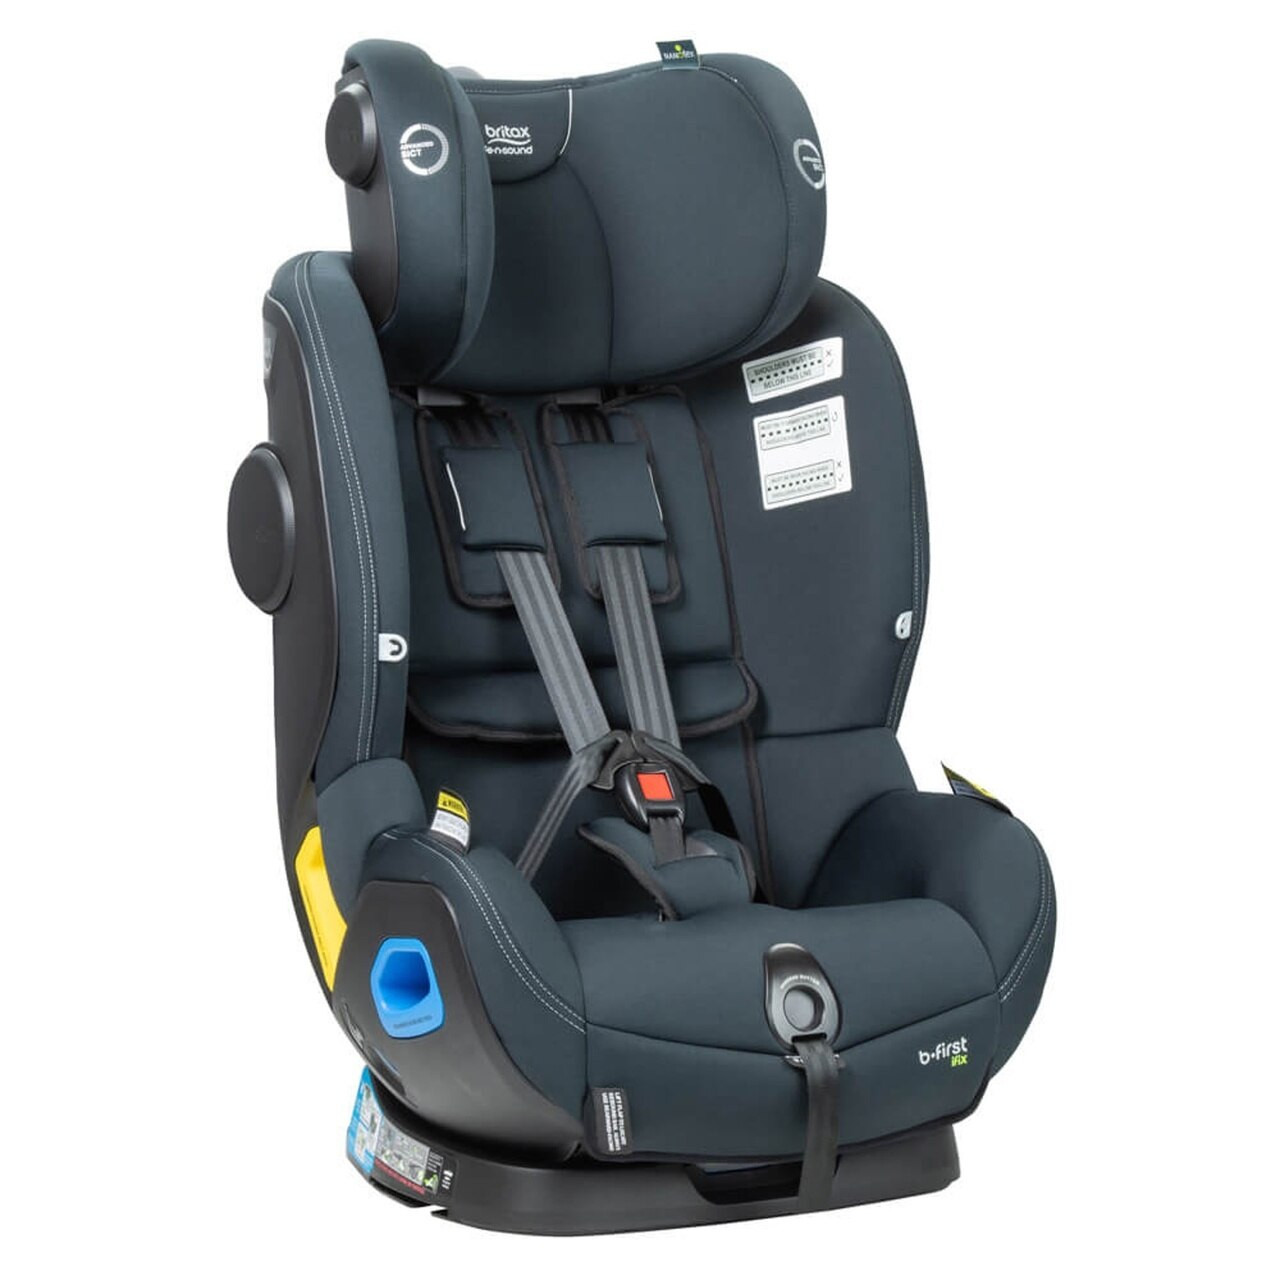 britax safe n sound b first ifix easy installation with thermo5 high performance fabric